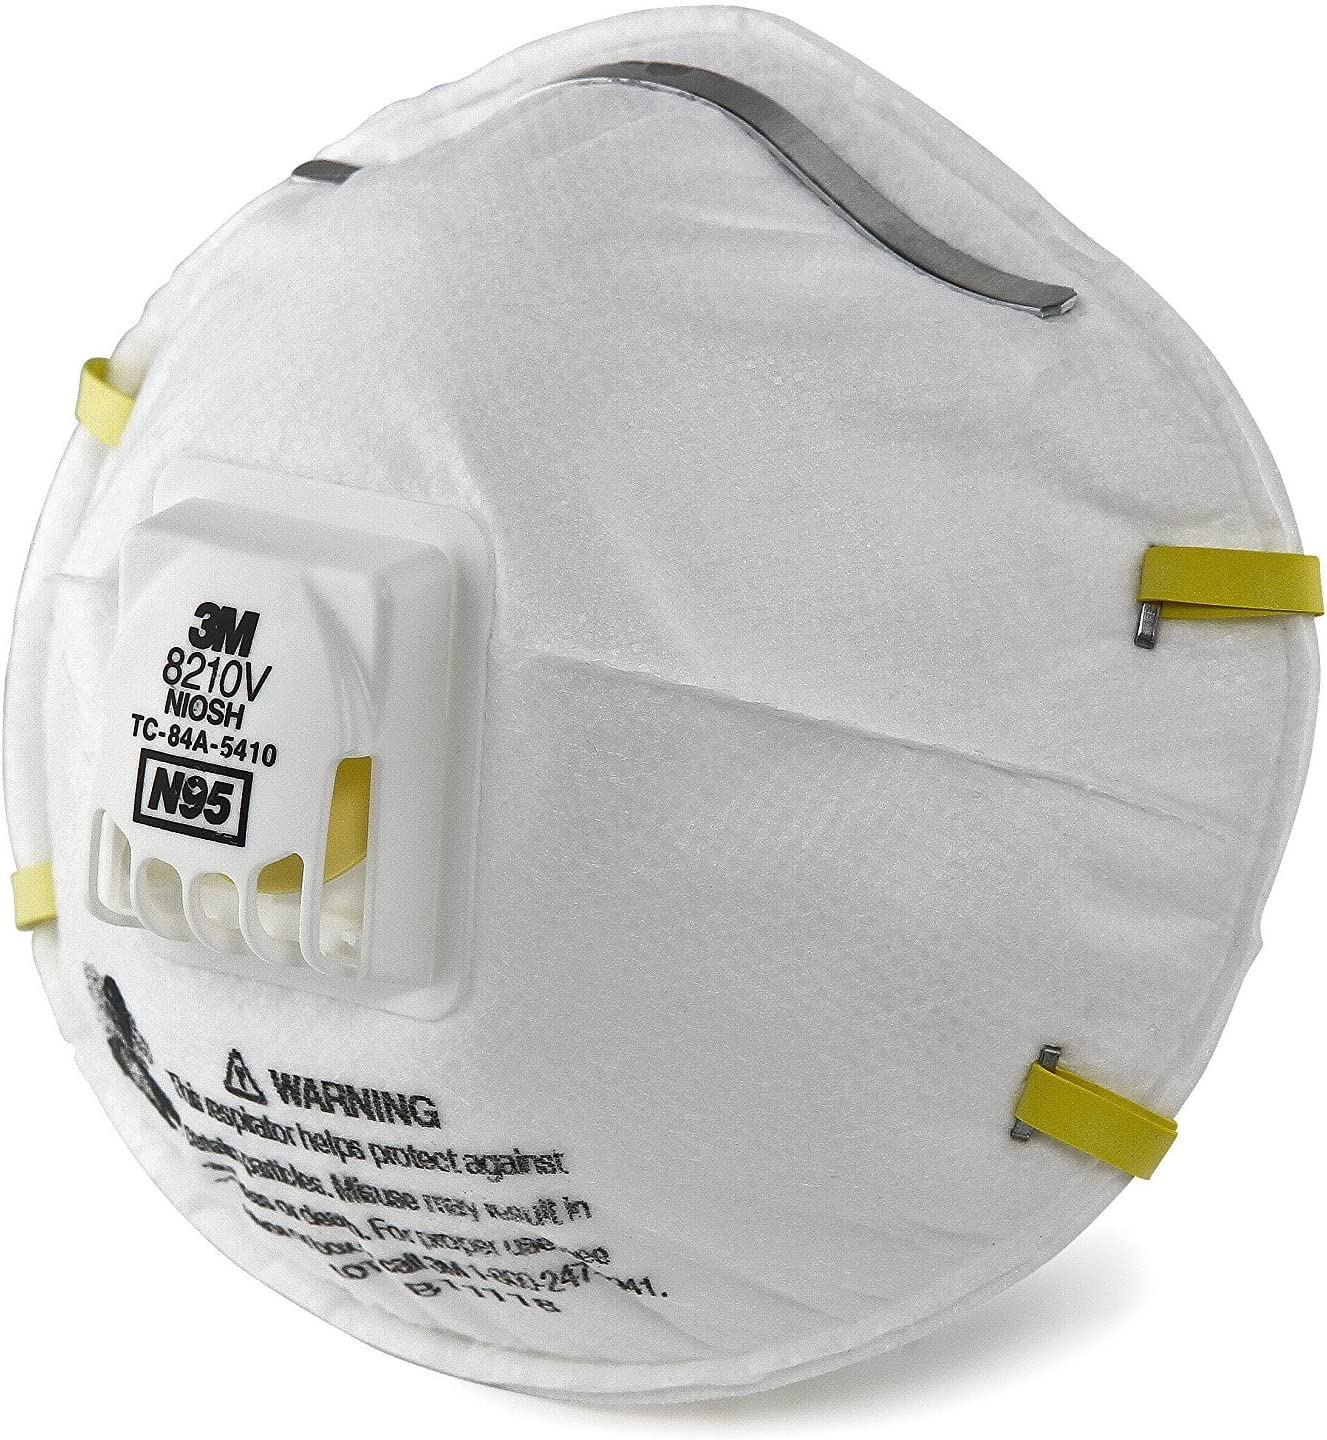 3m 8210v Particulate N95 Respiratory Respirator Case Protection